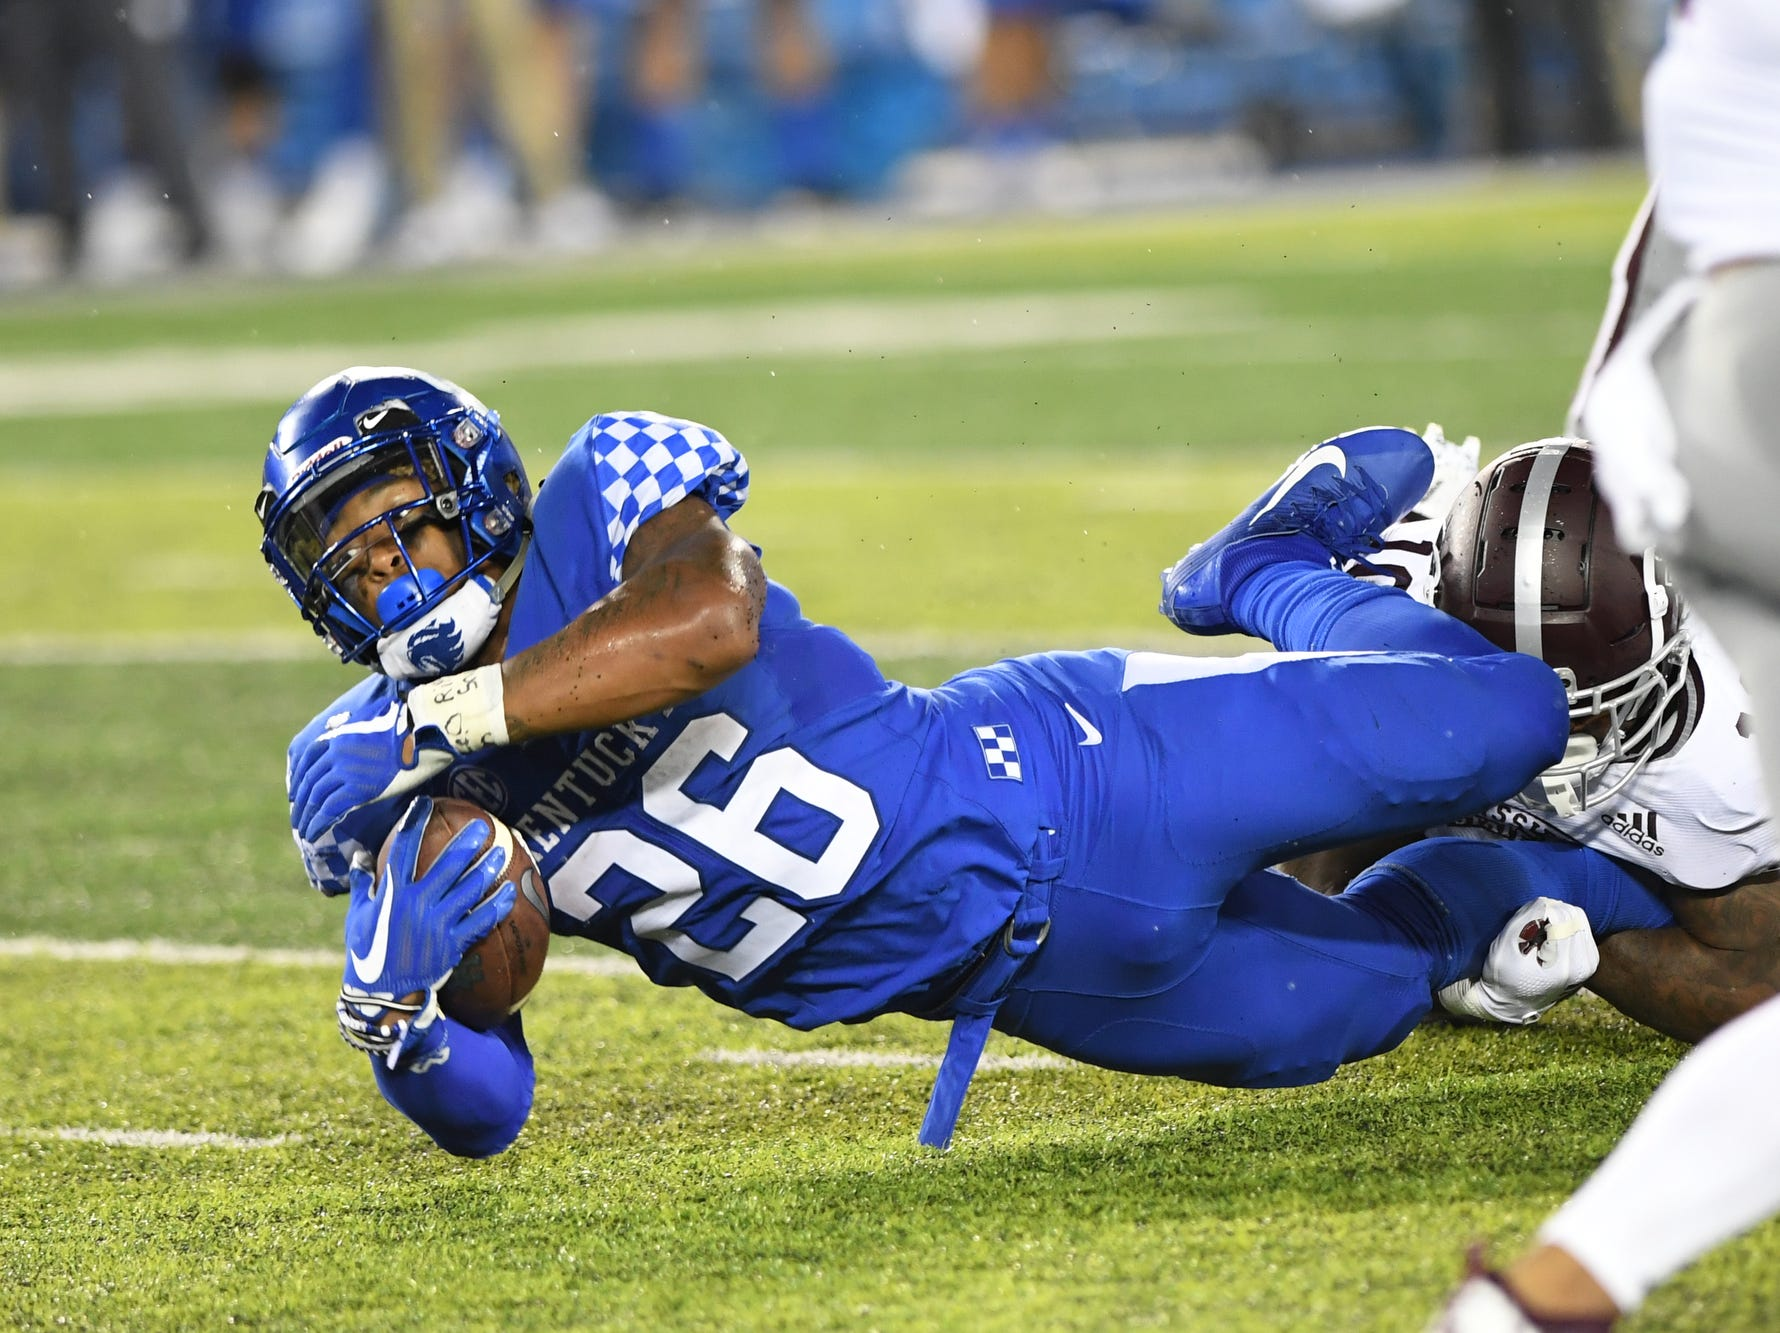 UK RB Benny Snell, Jr. dives forward with the ball during the University of Kentucky football game against Mississippi State at Kroger Field in Lexington, Kentucky on Saturday, September 22, 2018.